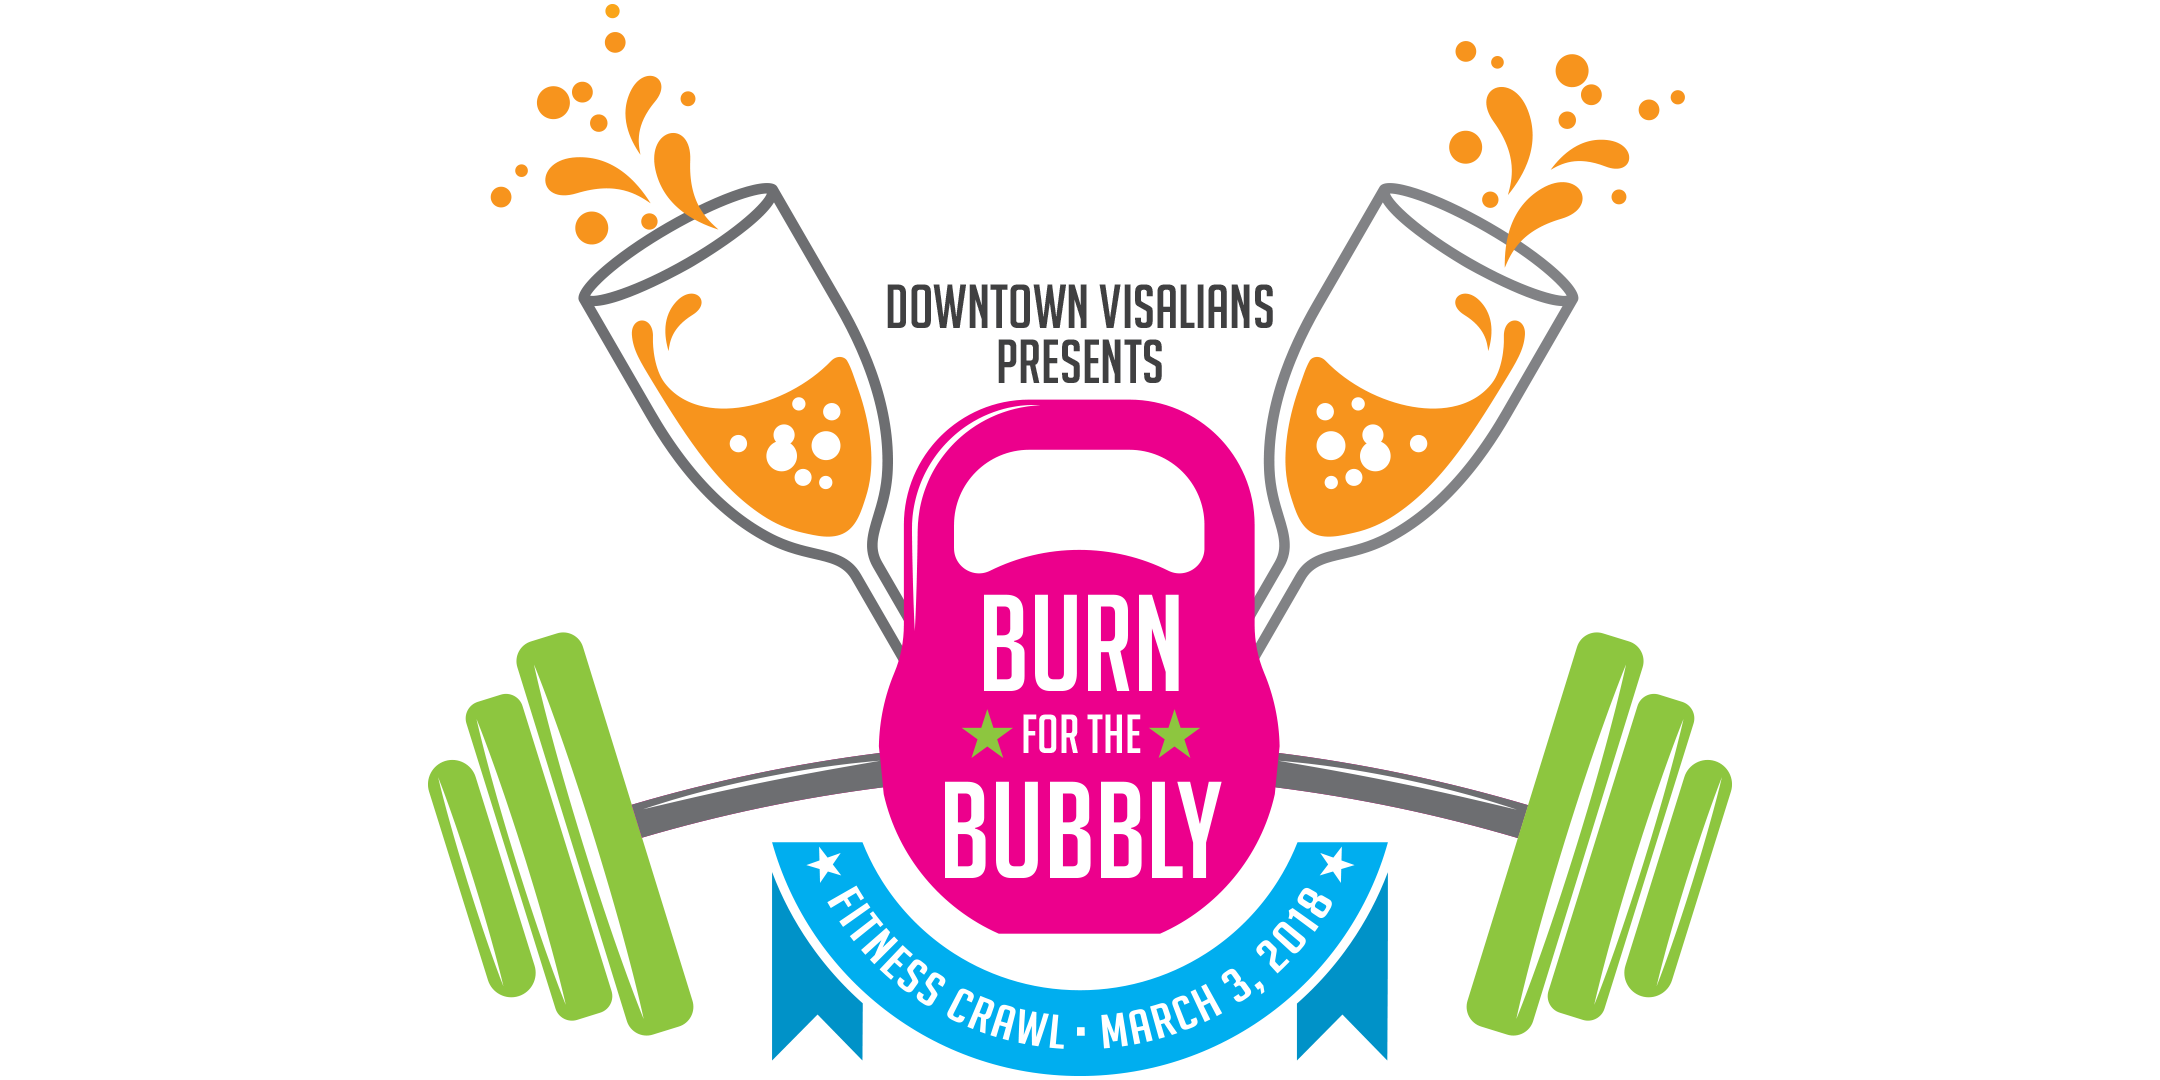 Burn for the bubbly. Raffle clipart attendance